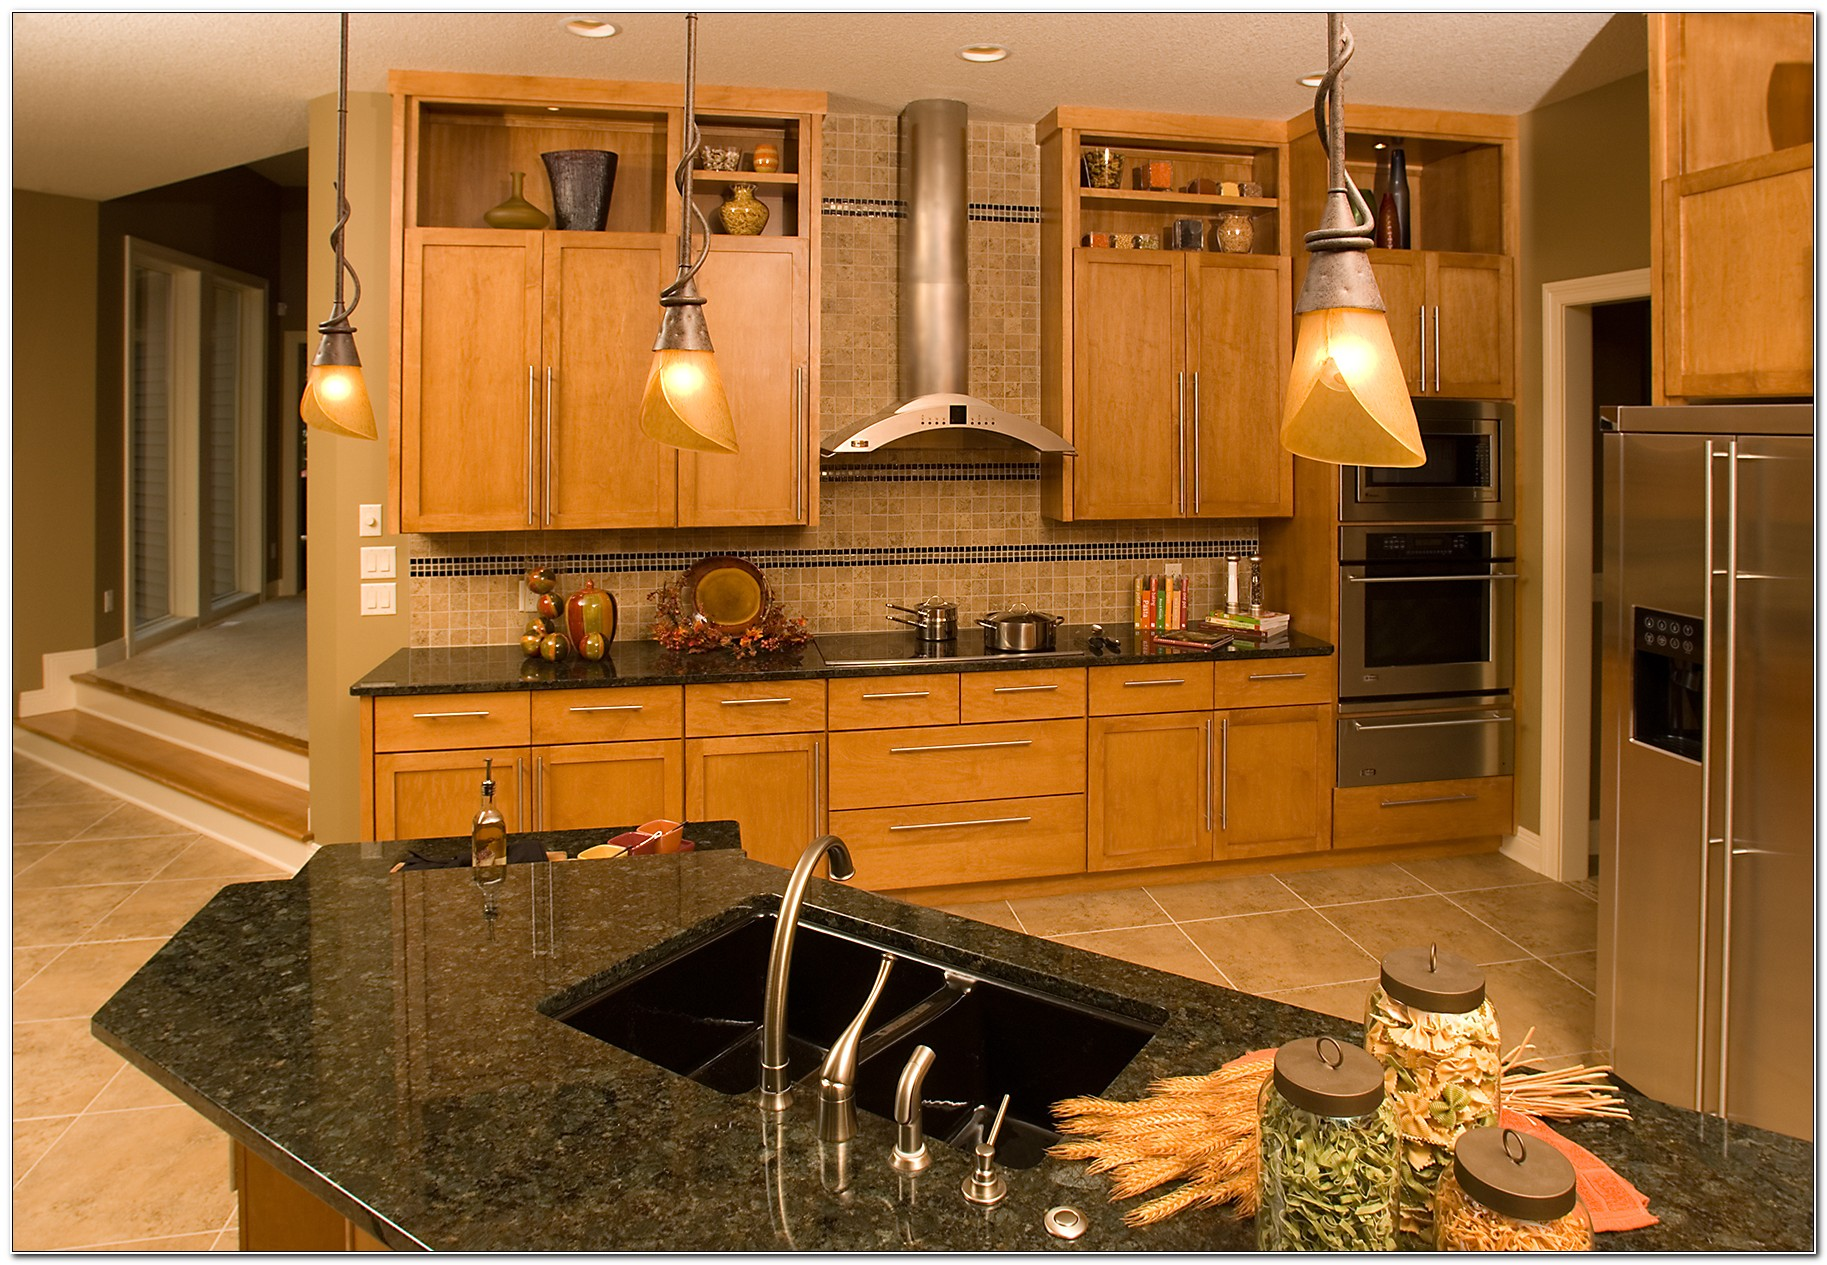 Kitchen Cabinets Orange County New York Cabinet Home Design Ideas 2ryve9e5zm